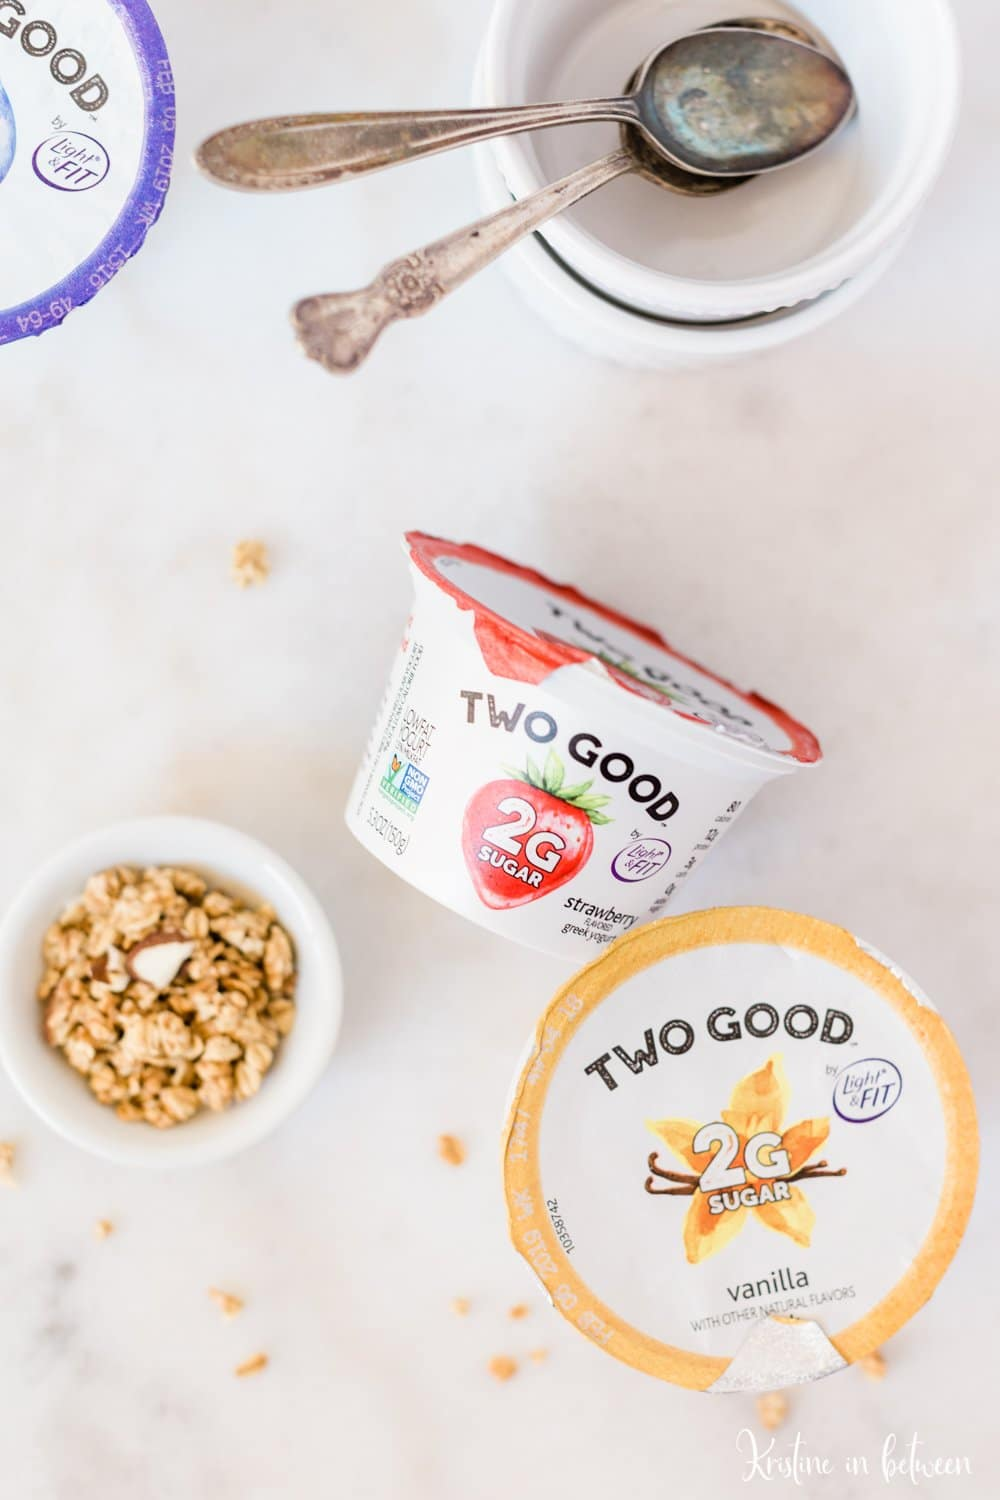 Easy ways to stay on the nutritional wagon, sponsored by Danone and Two Good Yogurt.